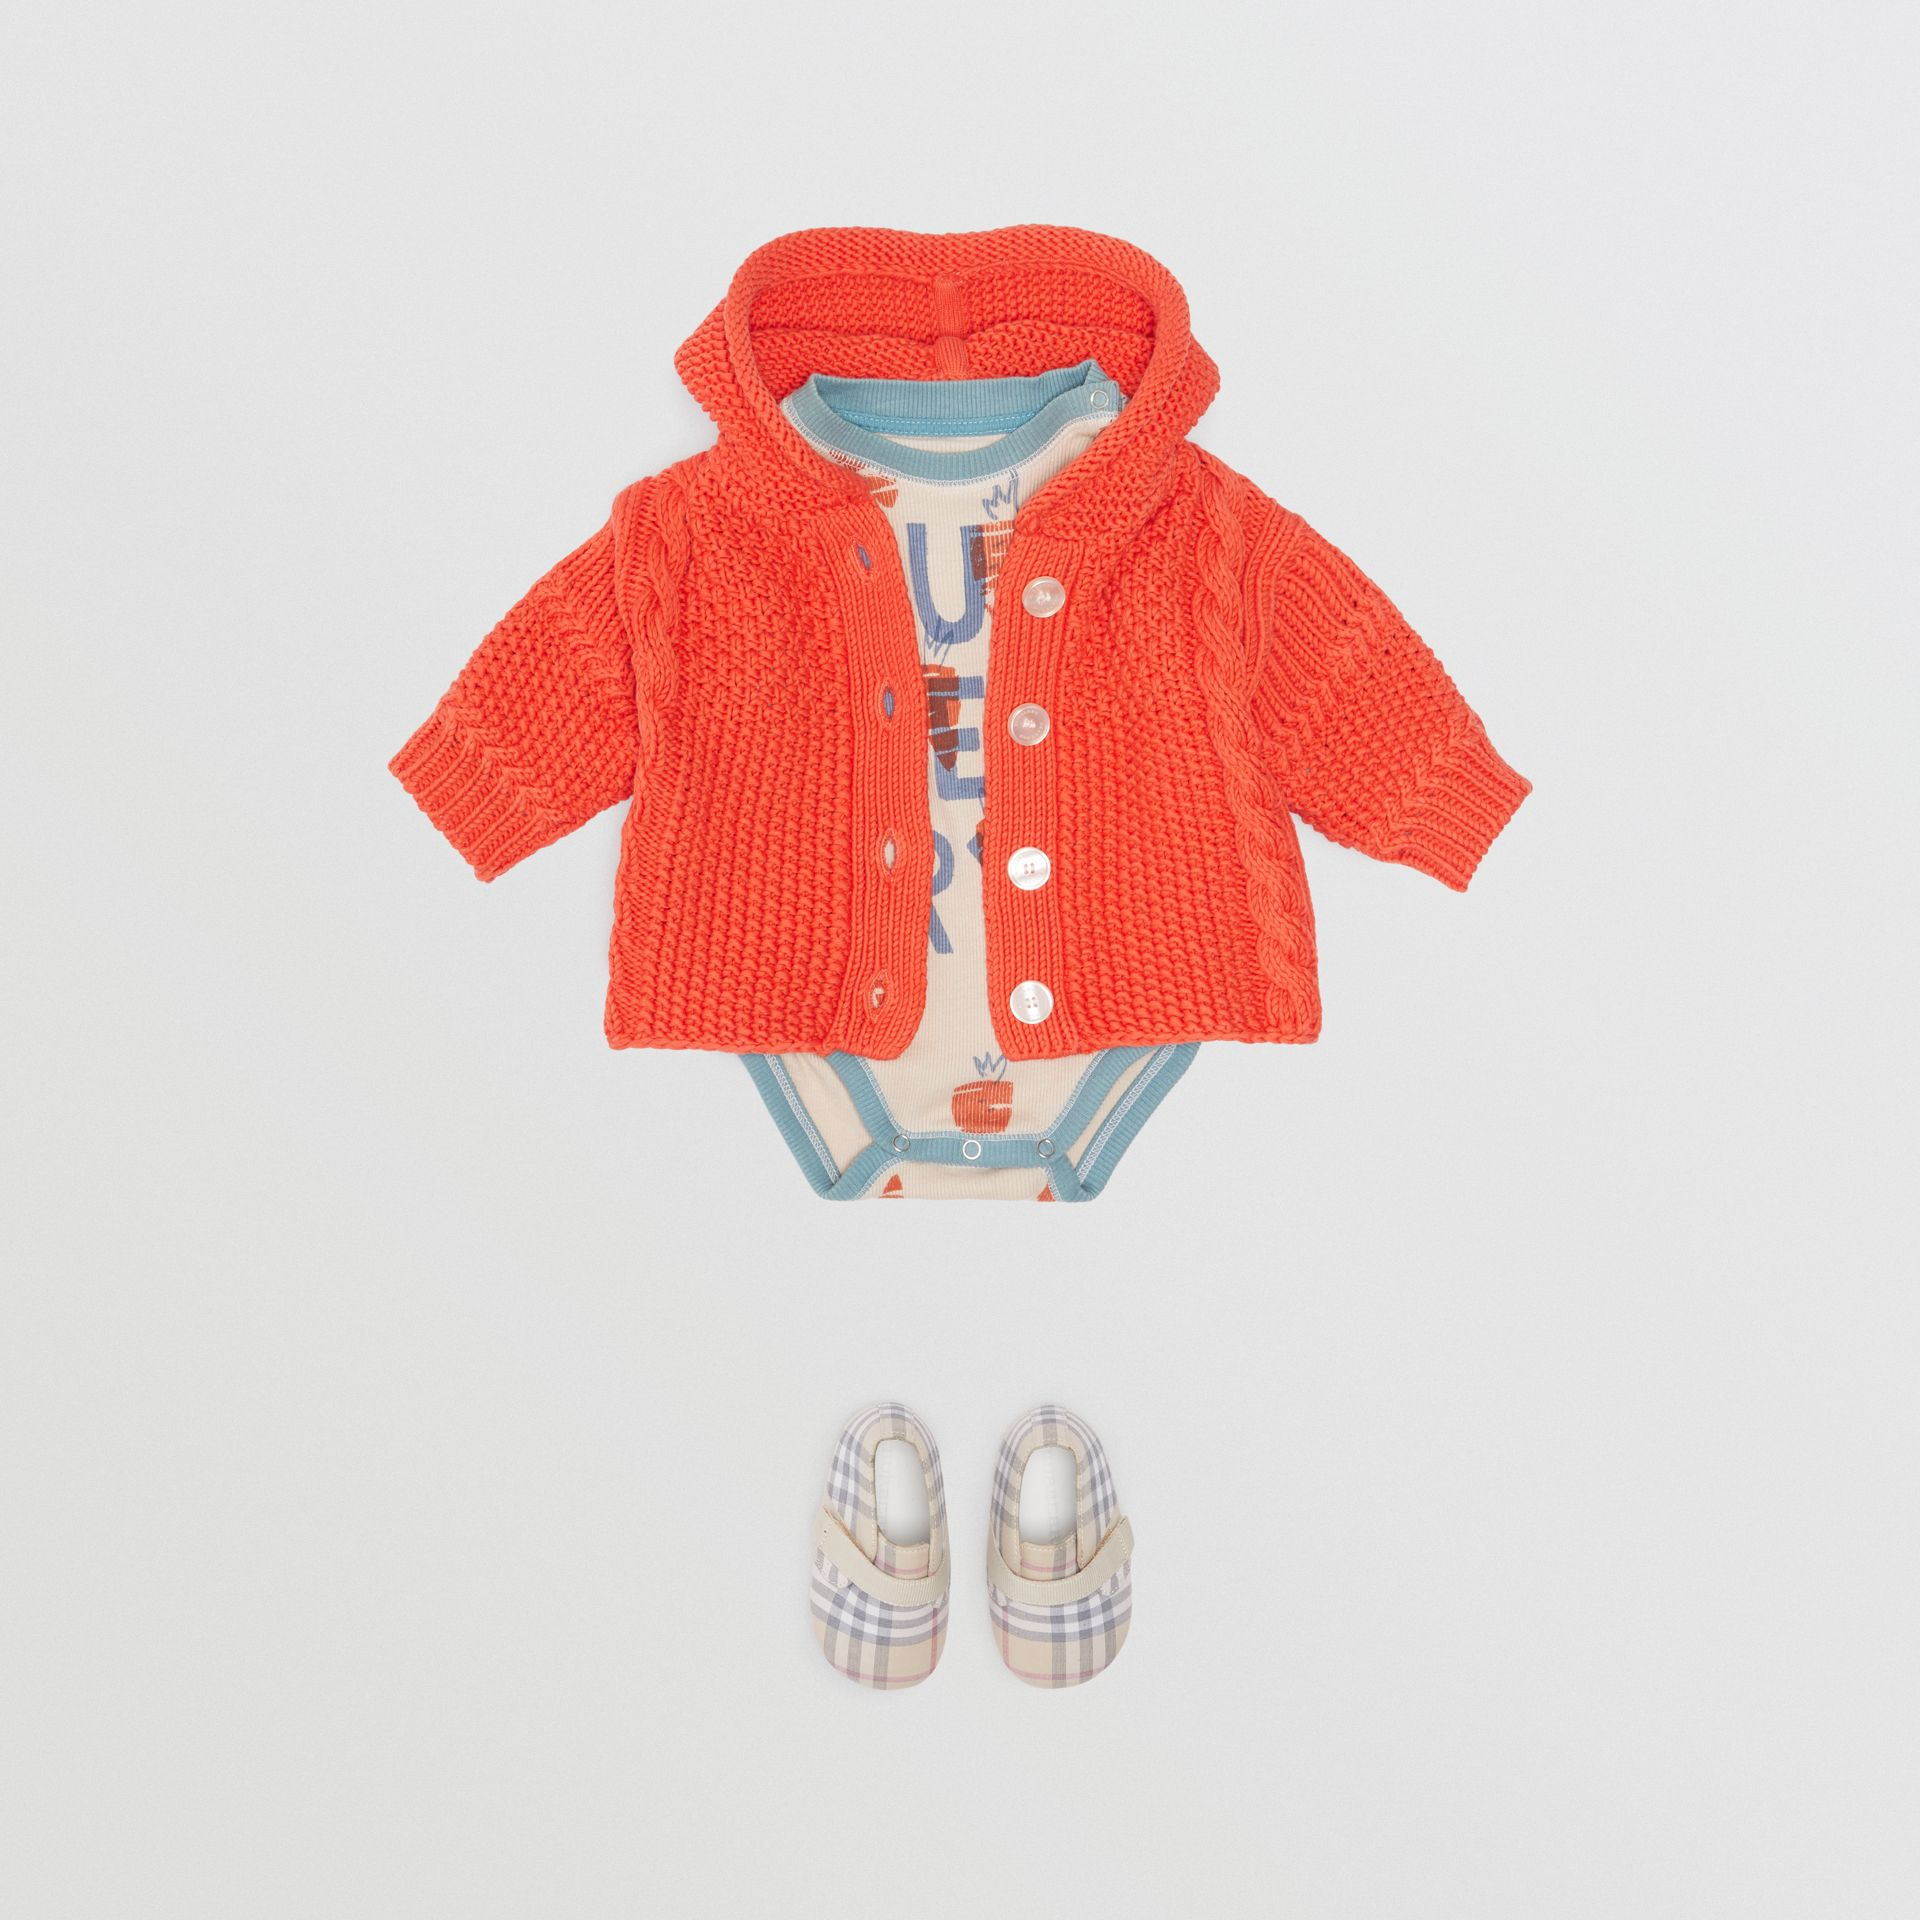 Contrast Knit Cotton Hooded Jacket in Orange Red - Children | Burberry Singapore - gallery image 2